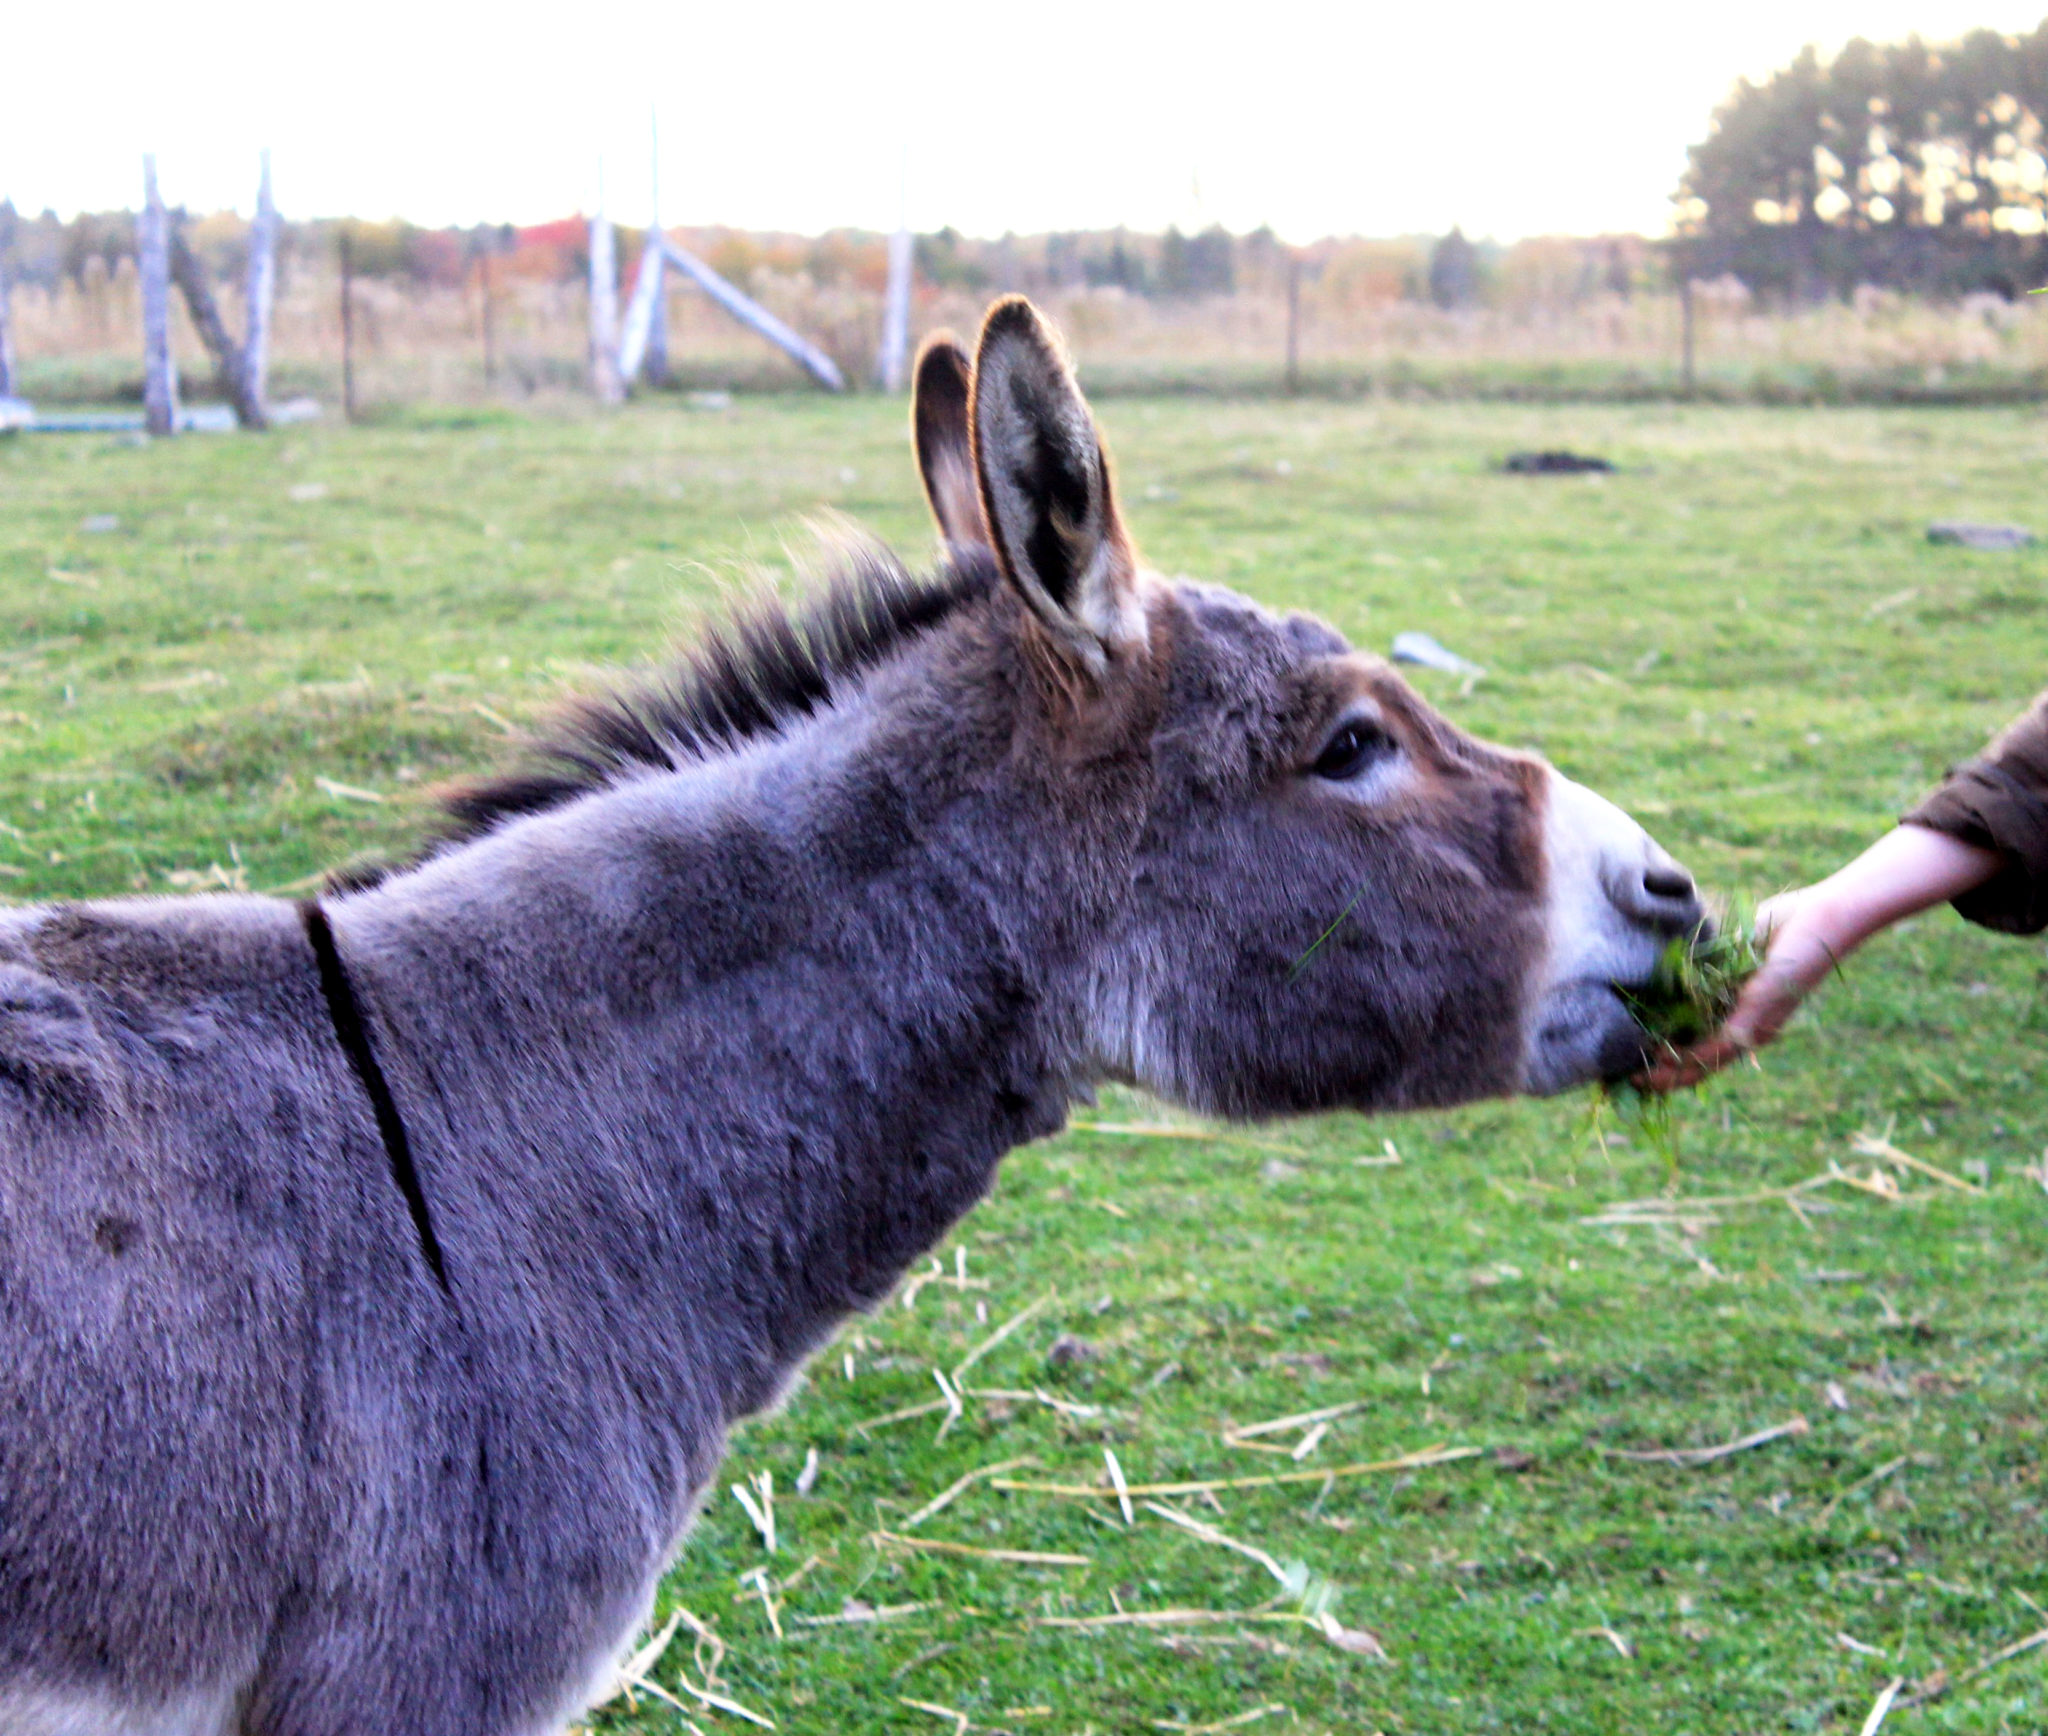 What are donkeys good for?